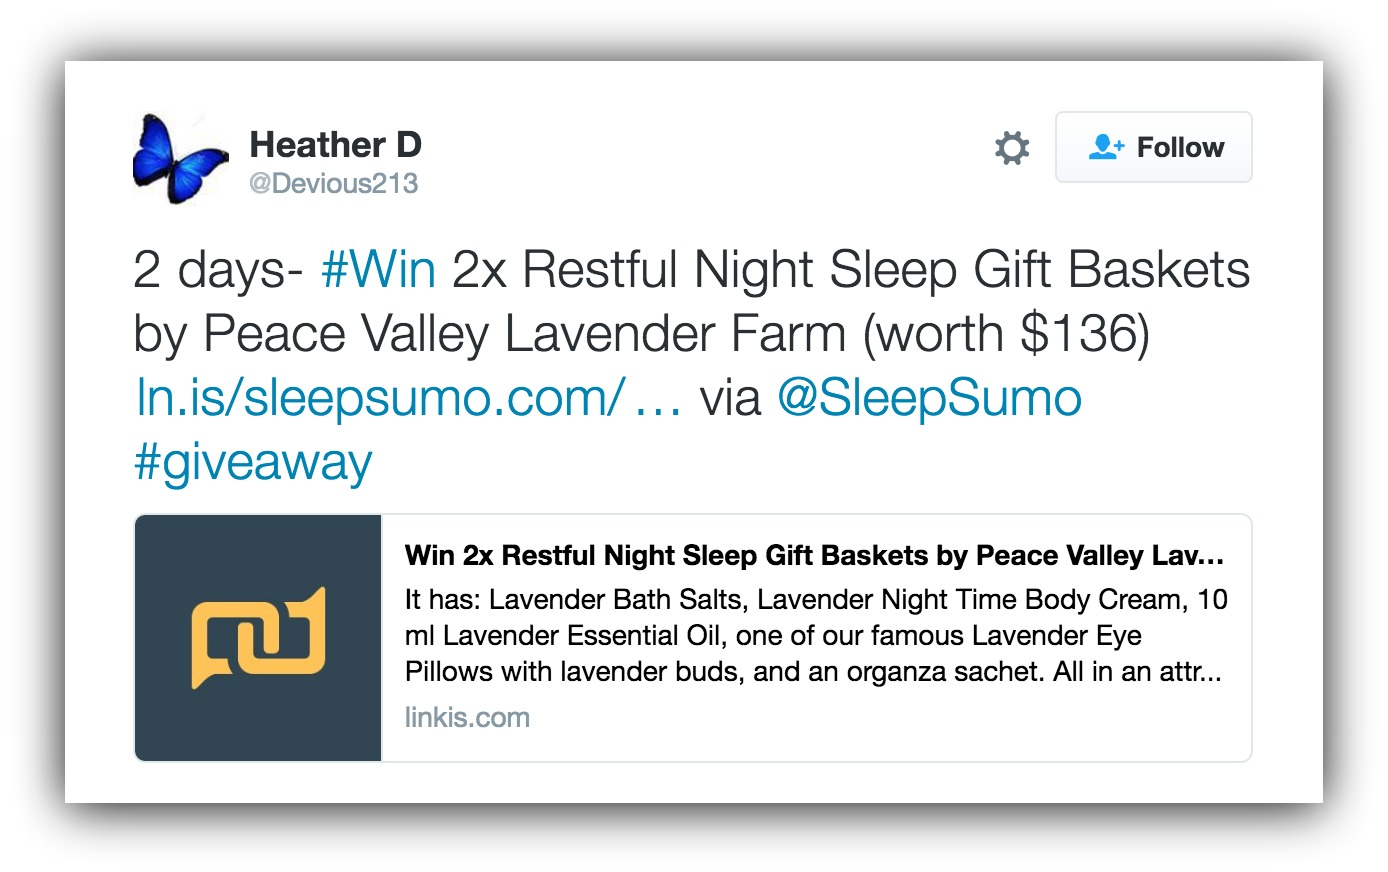 Screenshot showing a Twitter post promoting a giveaway